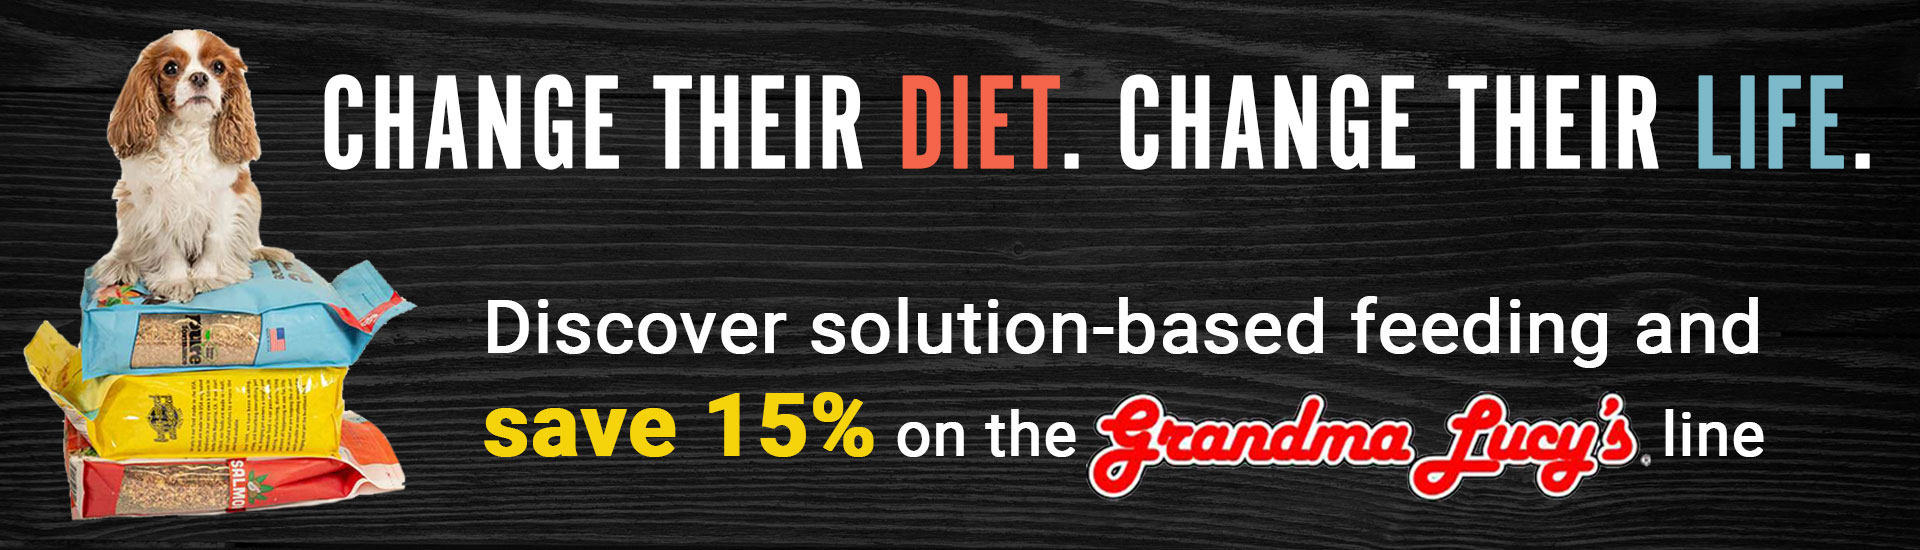 Change their diet. Change their life. Discover solution-based feeding and save 15% on the Grandma Lucy's line